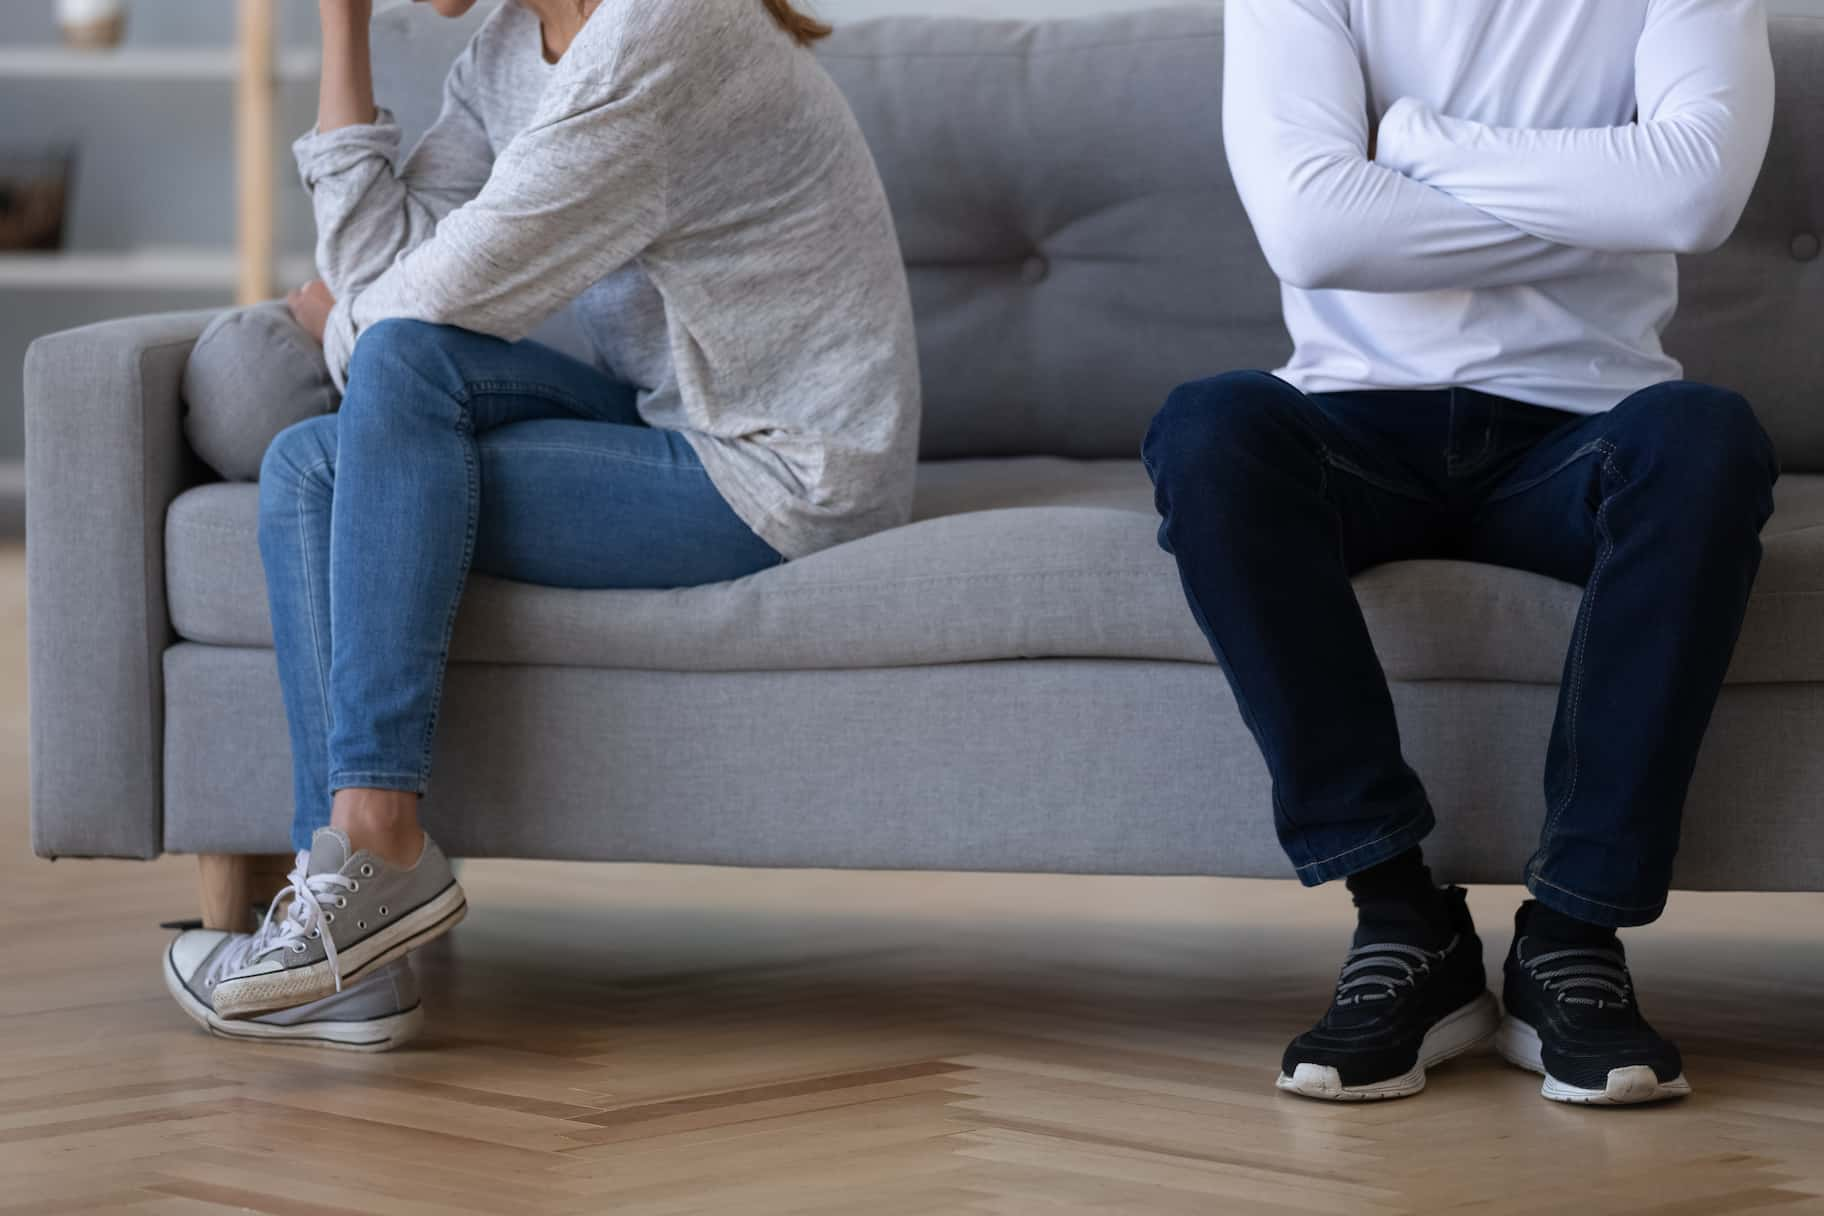 Conflict Avoidance In Relationships: How To Break The Cycle